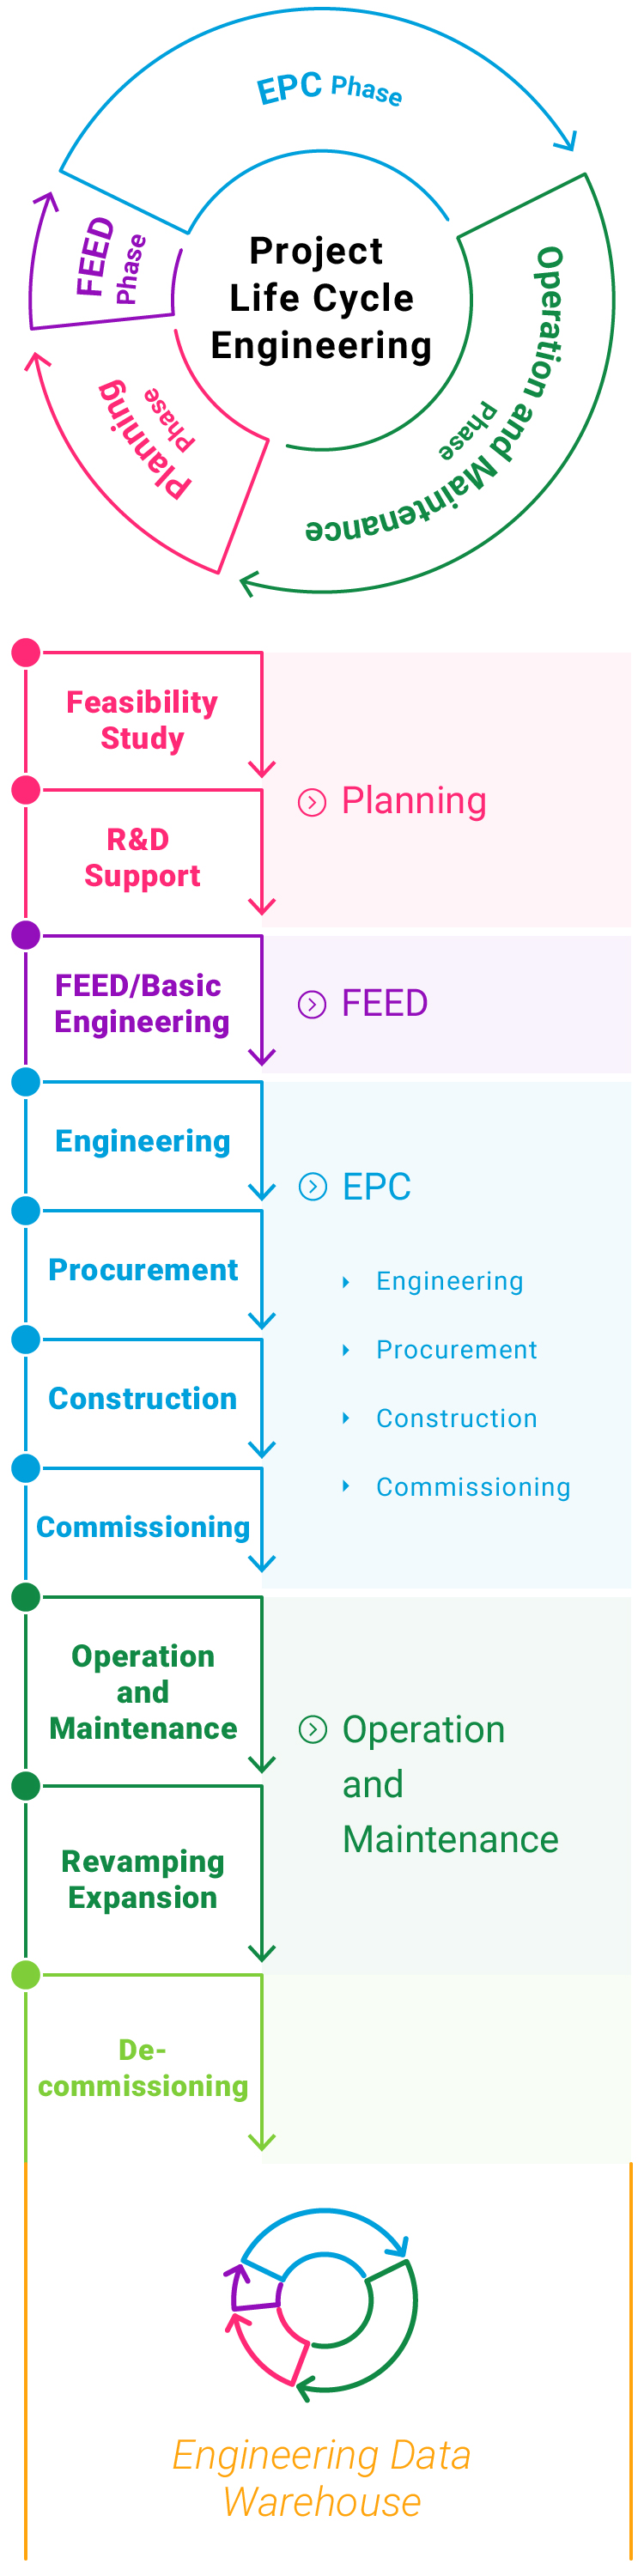 Project Lifecycle Engineering